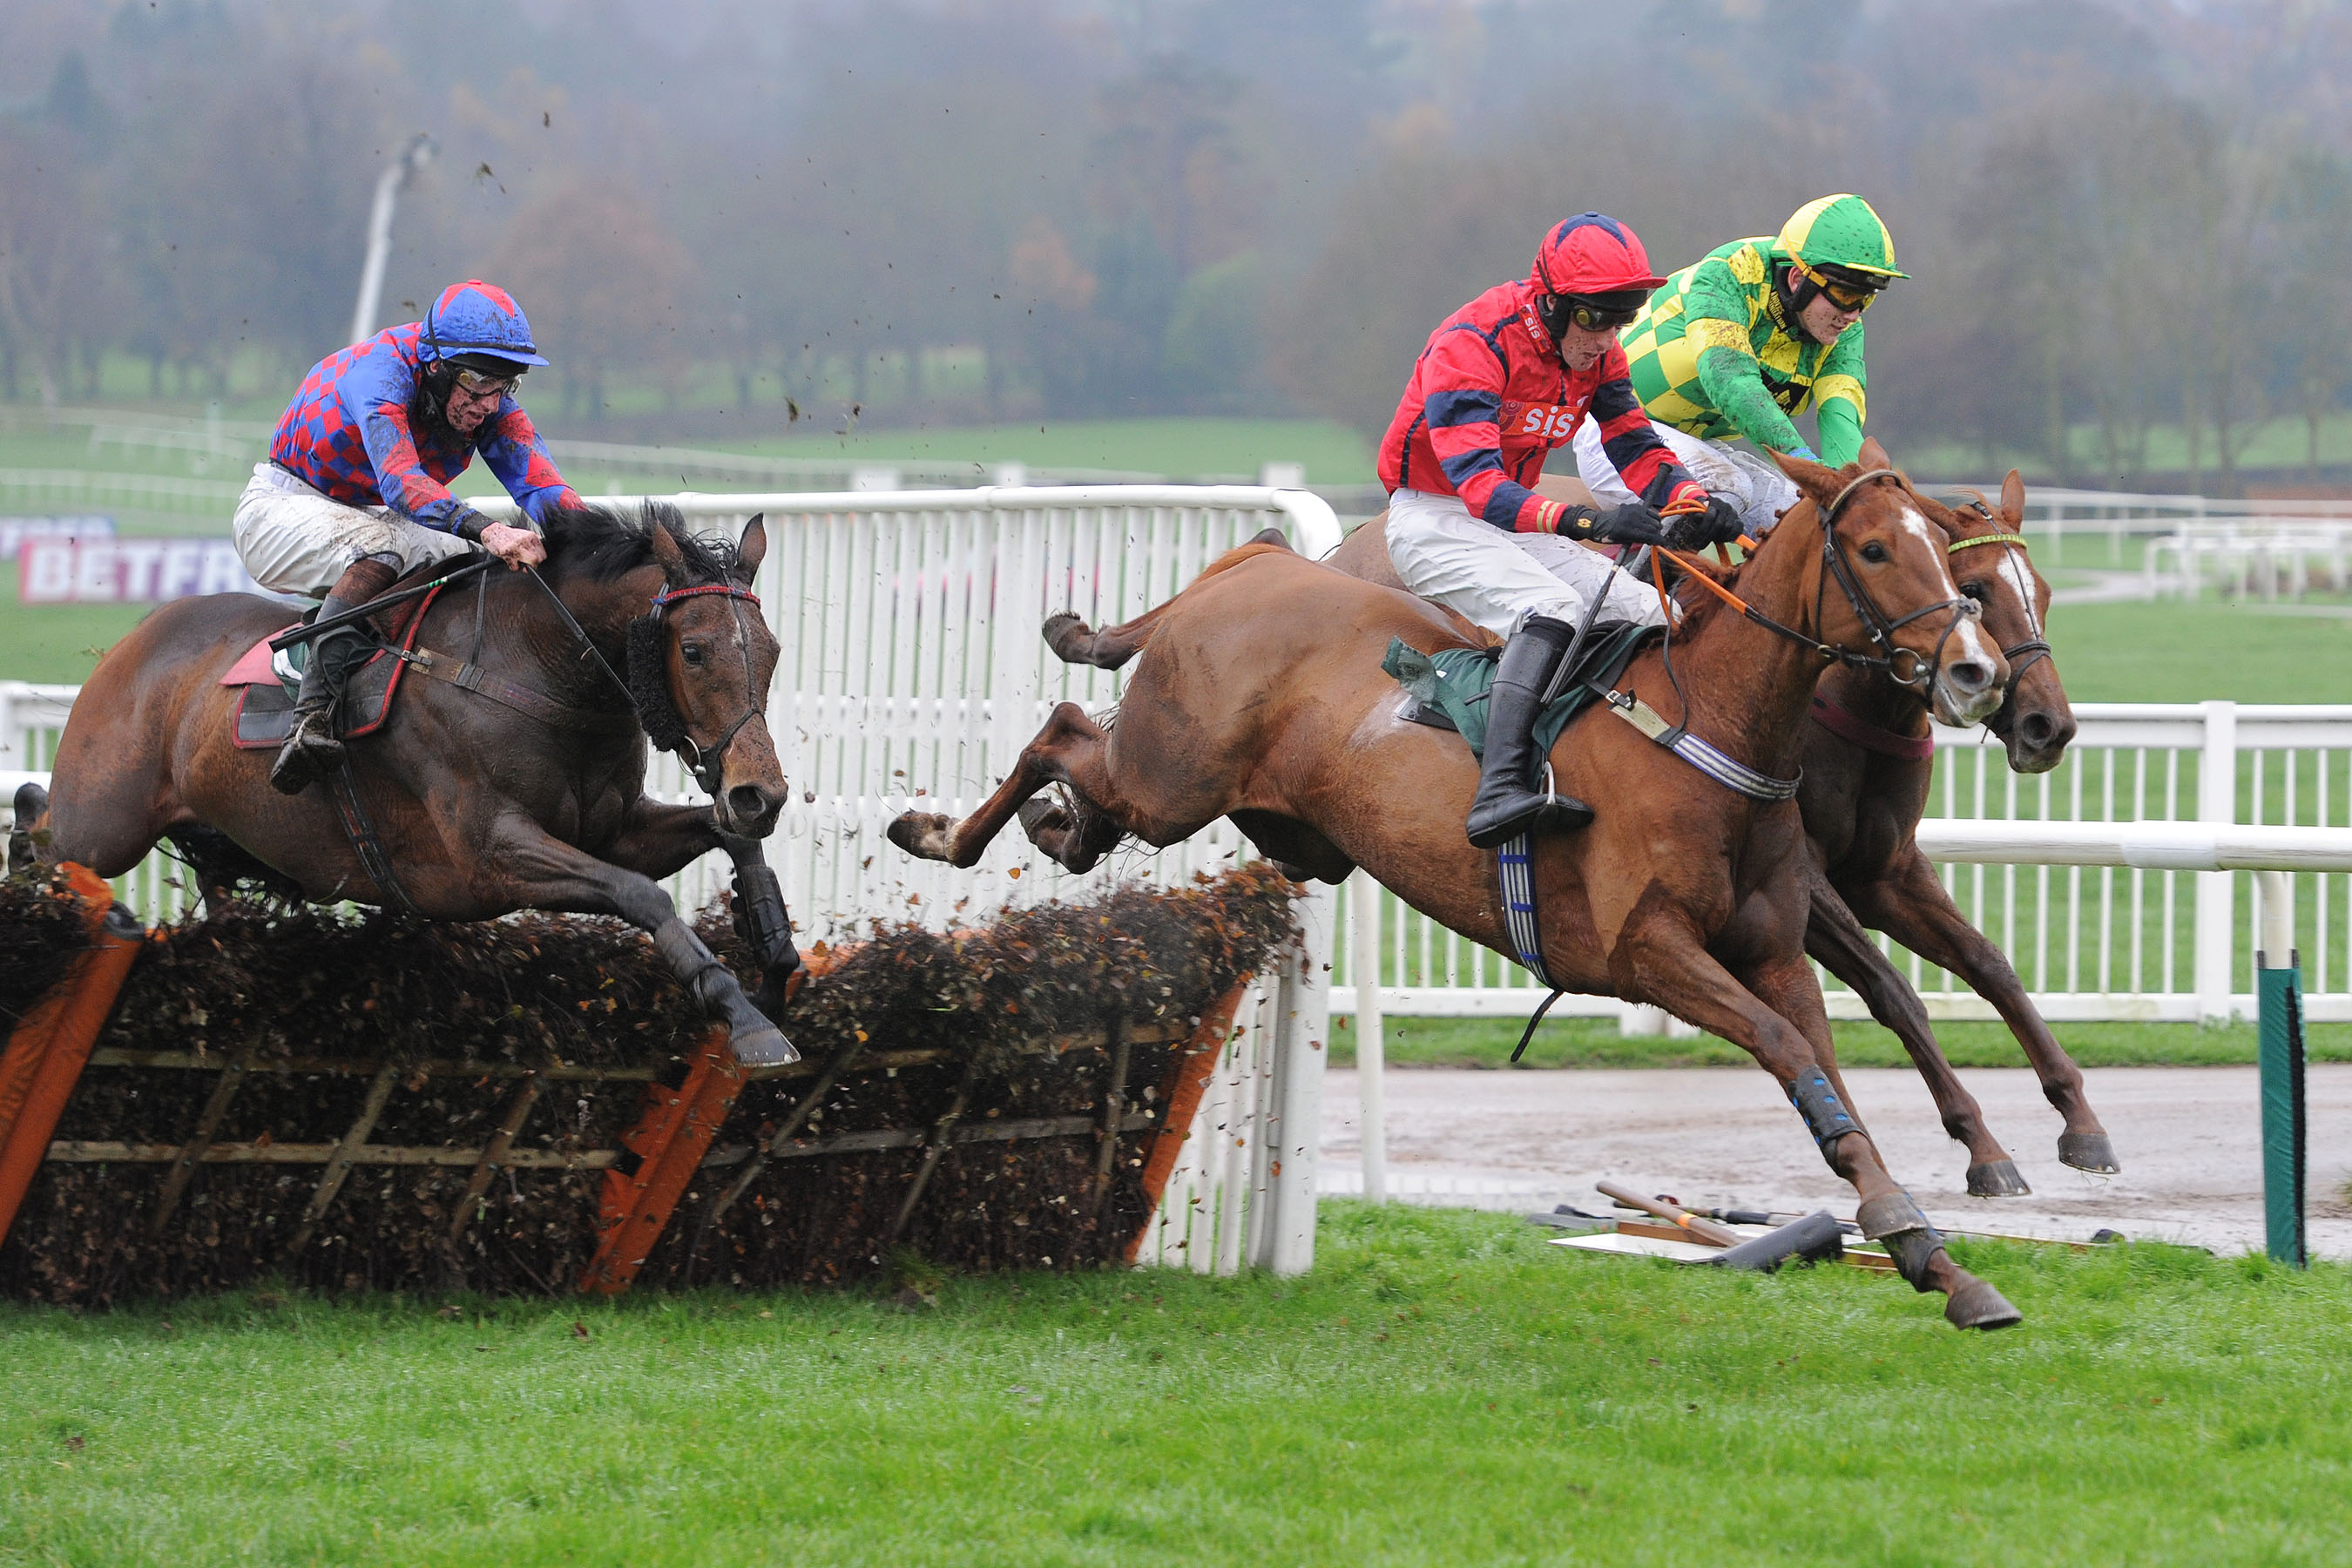 Rose of the world winning at Uttoxeter